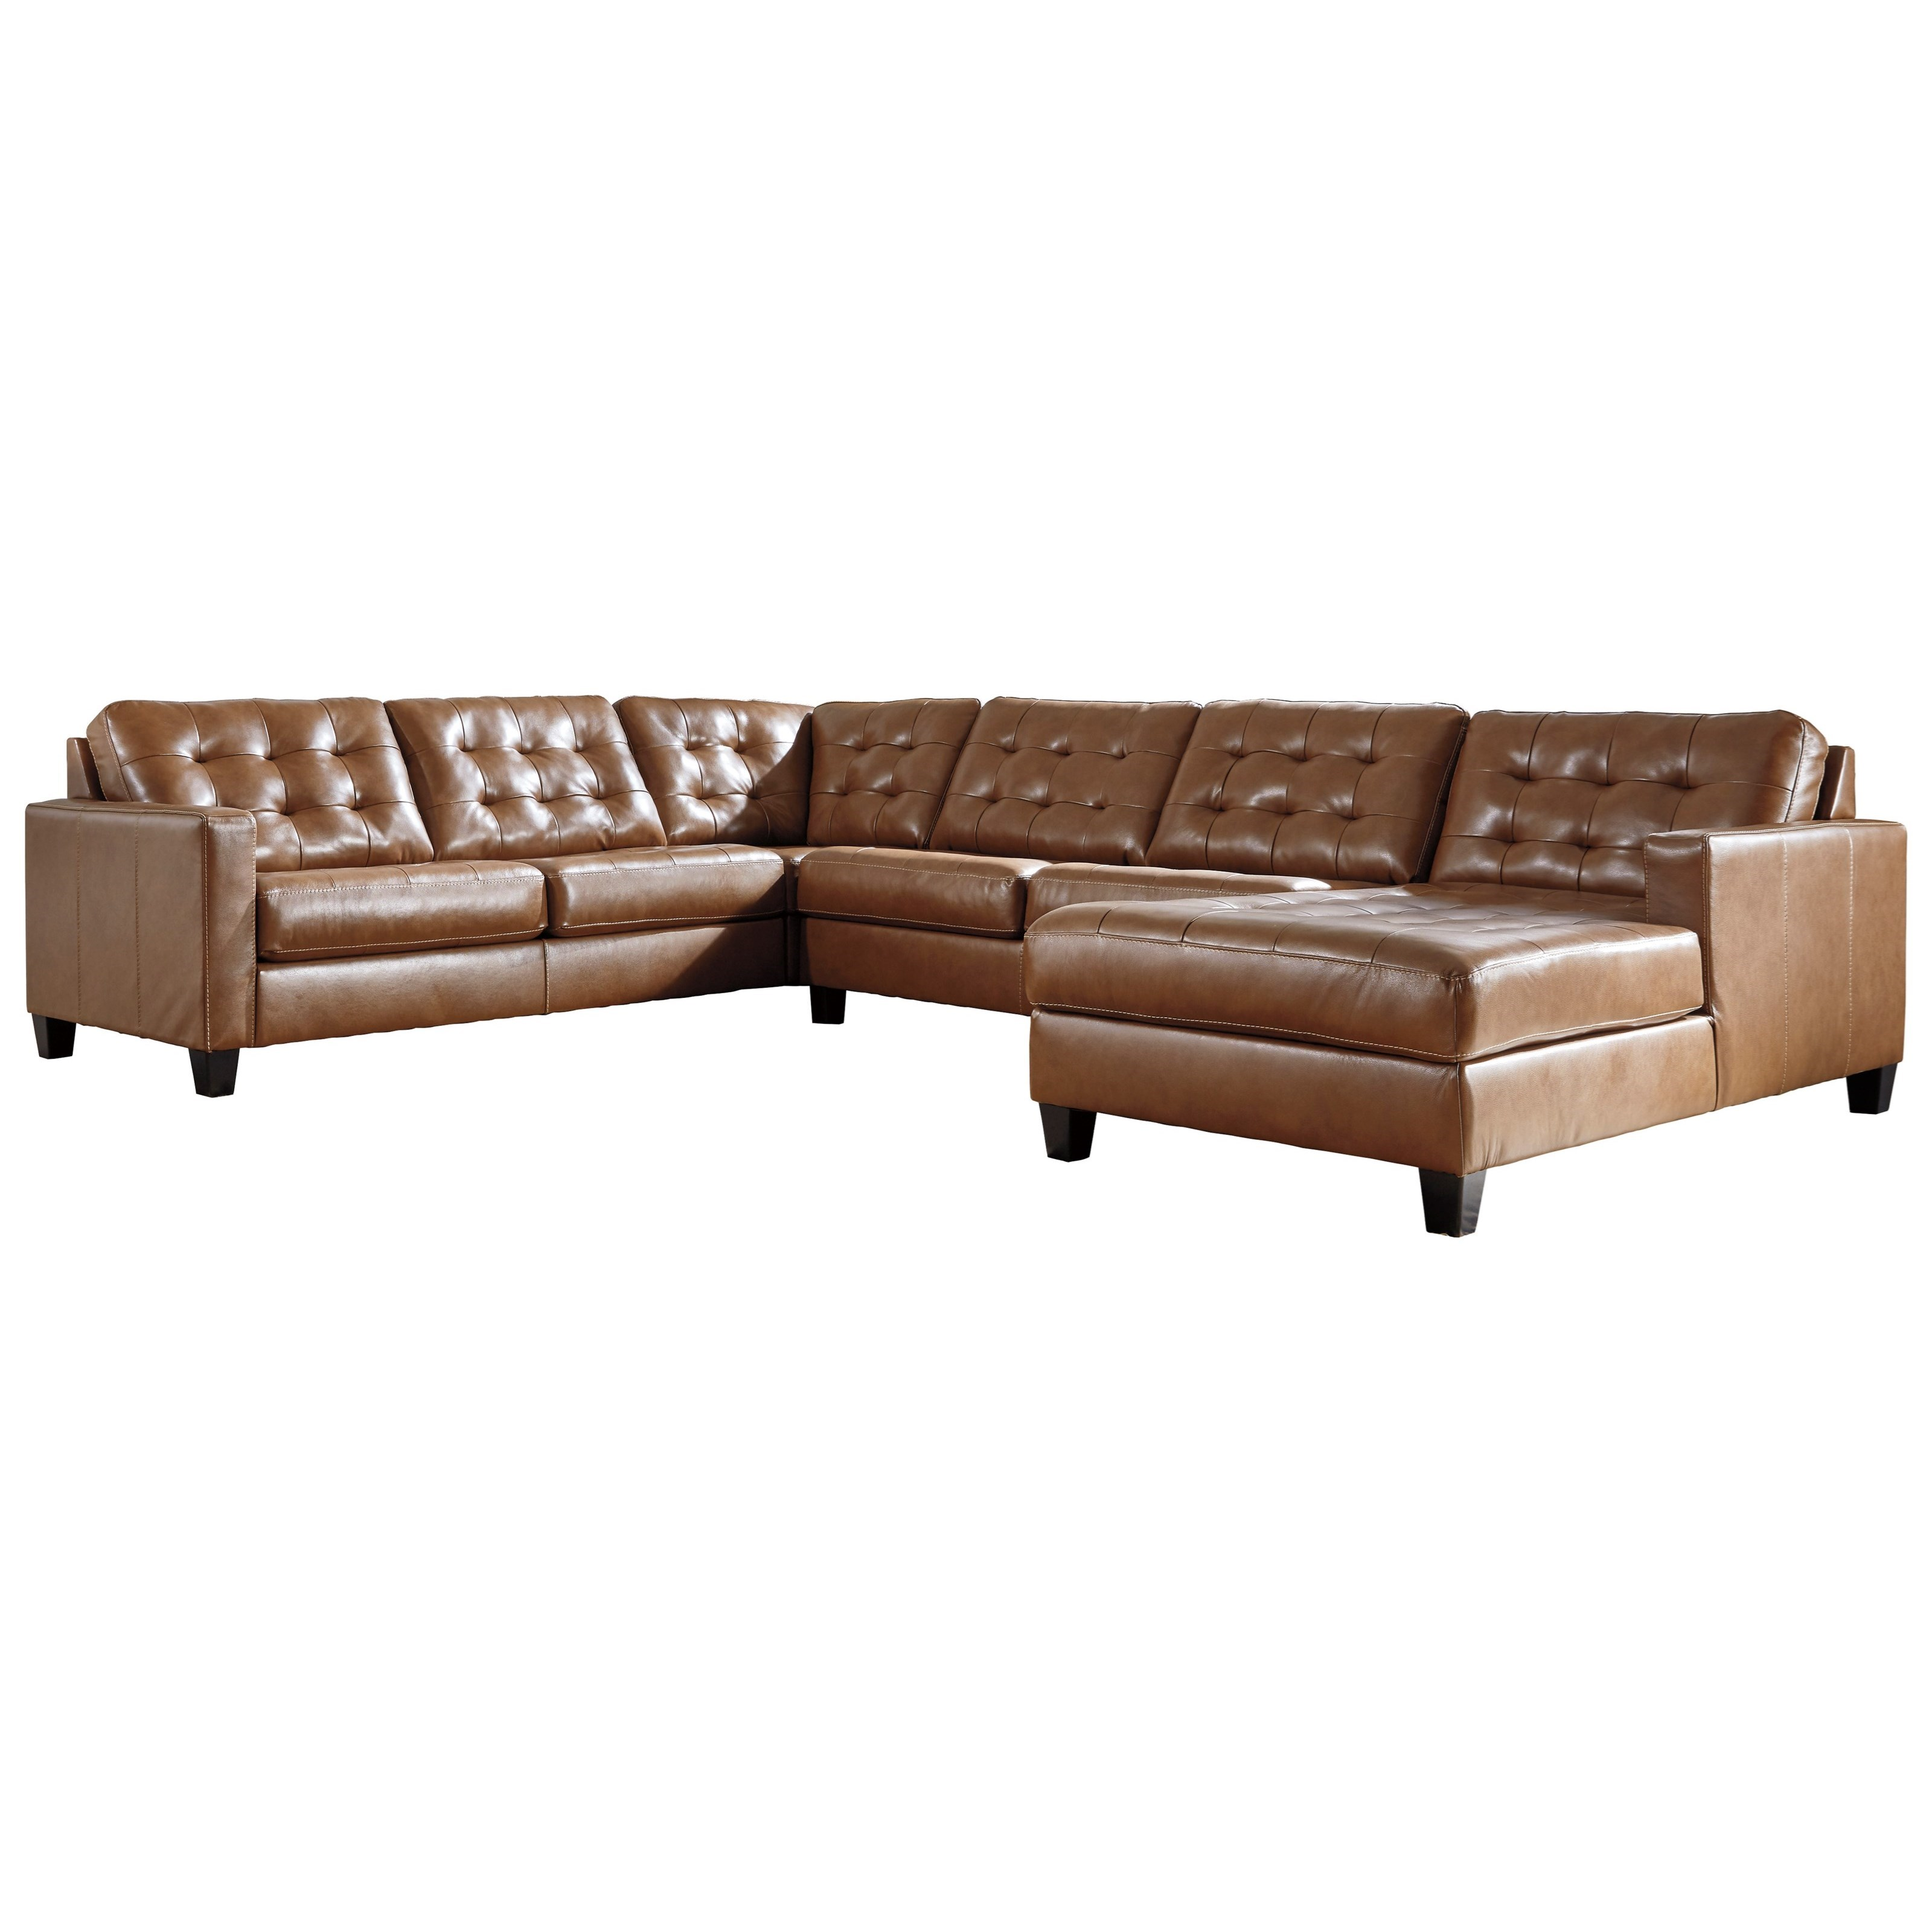 Baskove 4-Piece Sectional by Signature Design by Ashley at Beck's Furniture